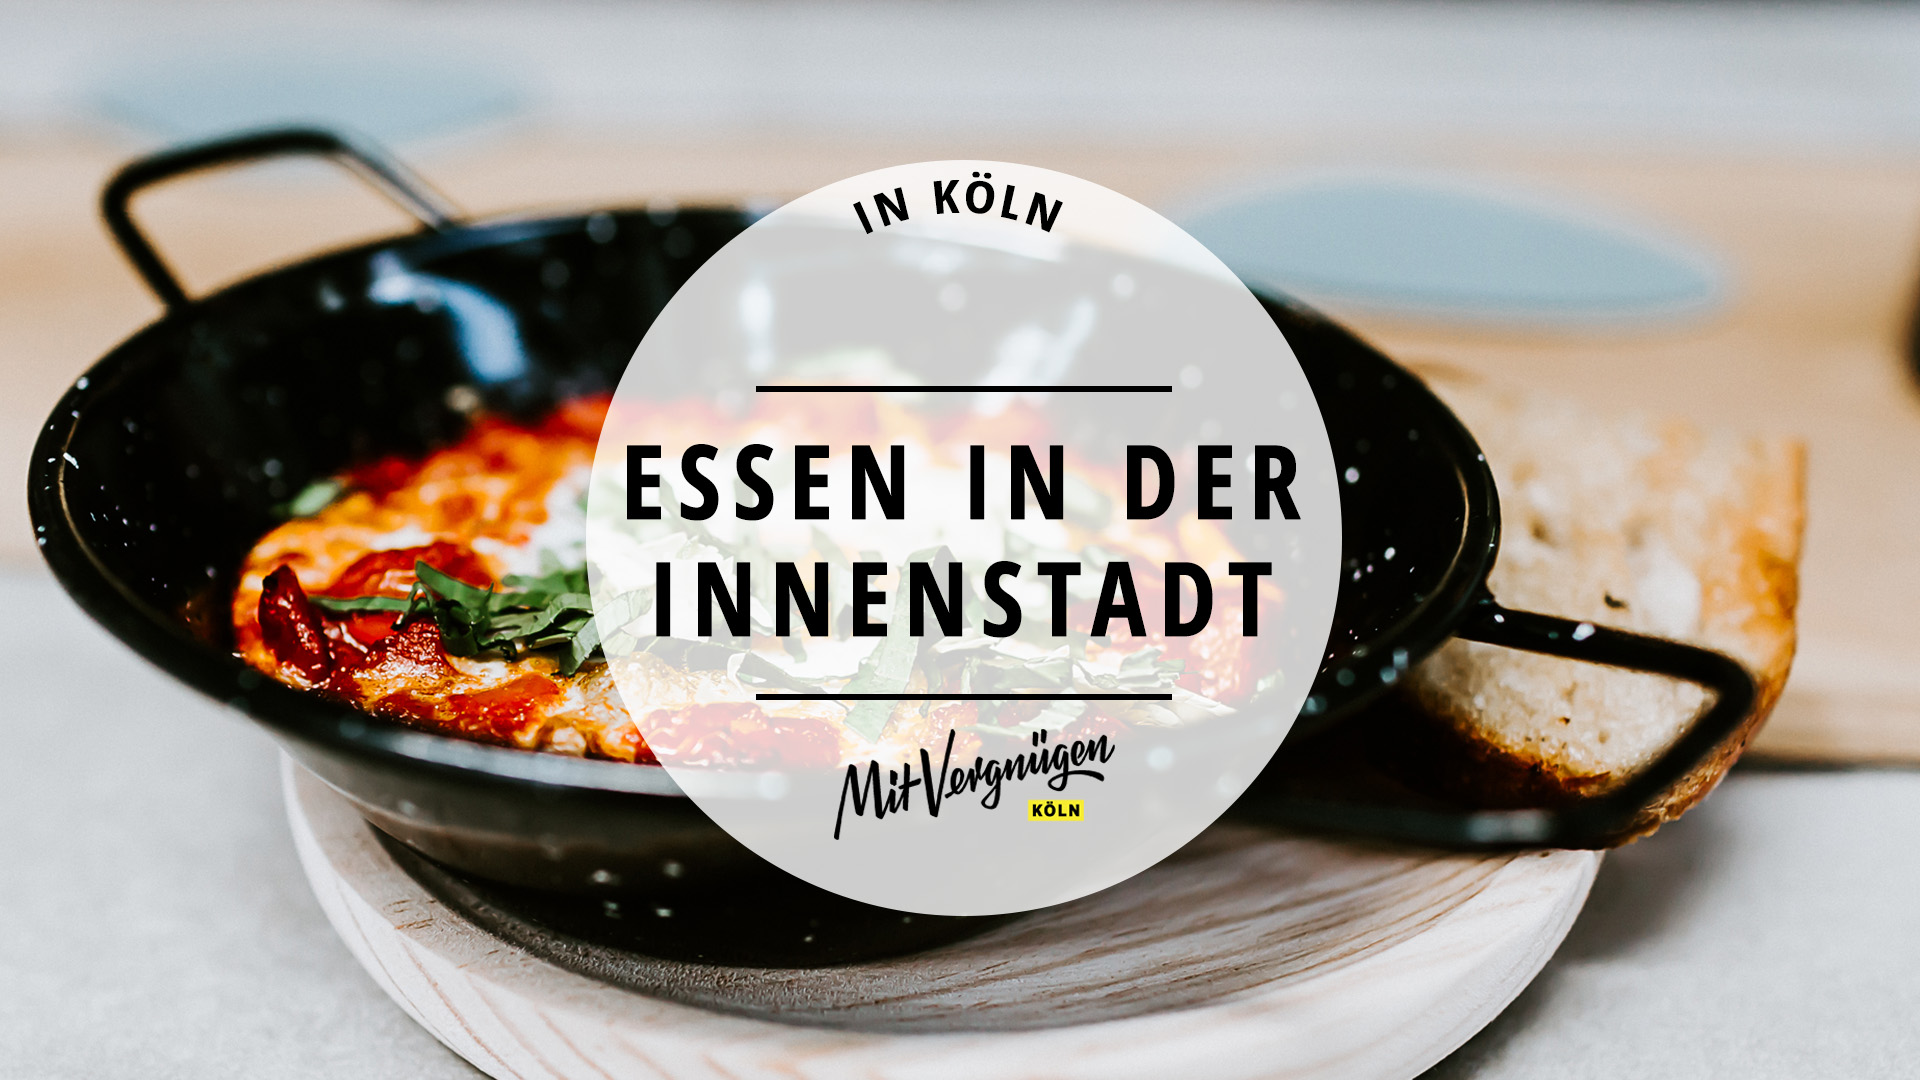 11 restaurants in der innenstadt in denen ihr lecker essen k nnt mit vergn gen k ln. Black Bedroom Furniture Sets. Home Design Ideas